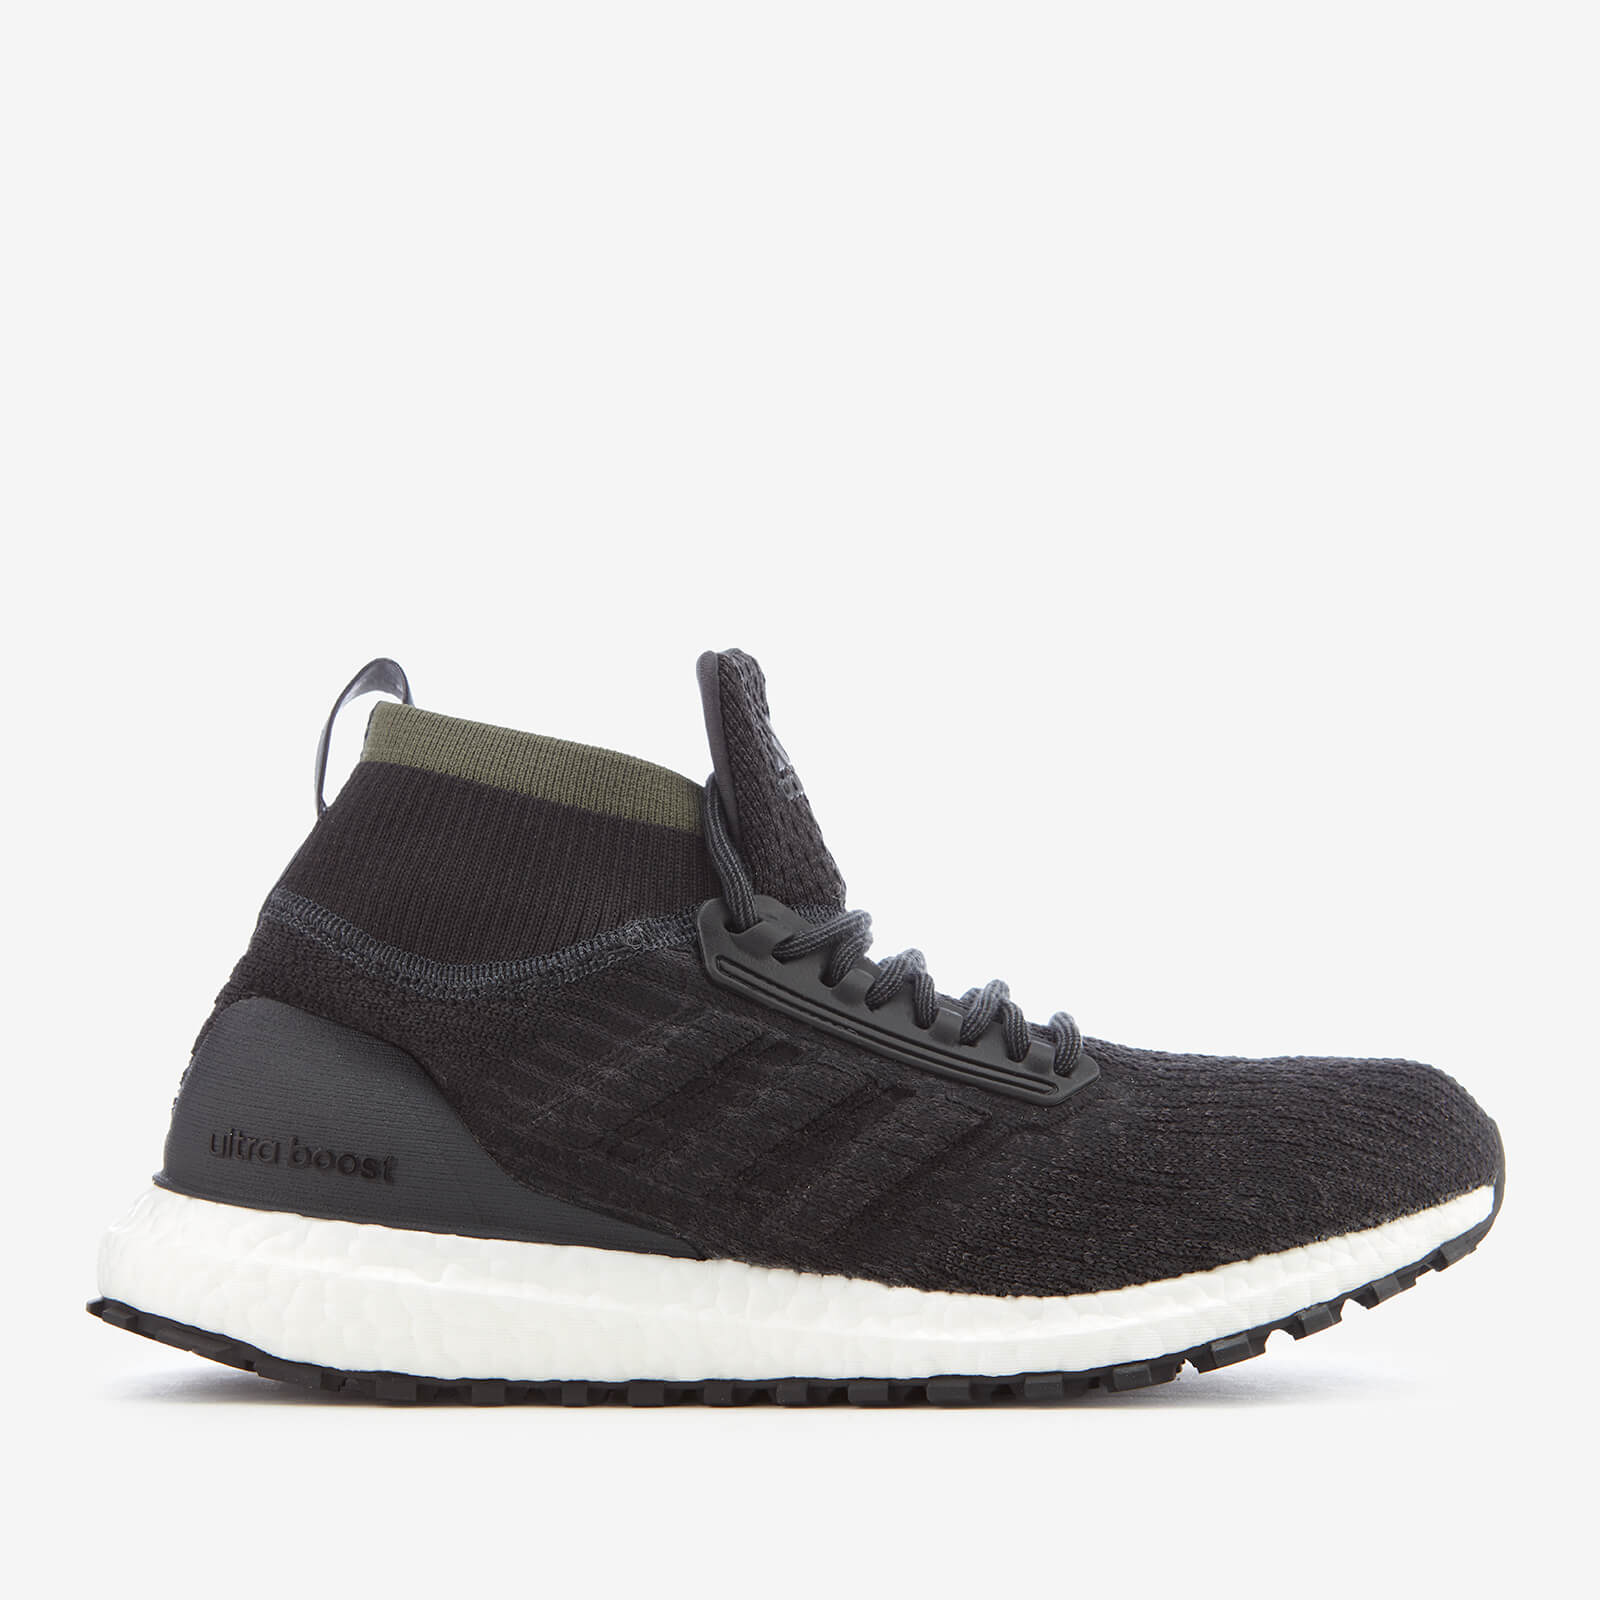 5e41f653301 adidas Men s Ultraboost All Terrain Trainers - Carbon Sports   Leisure